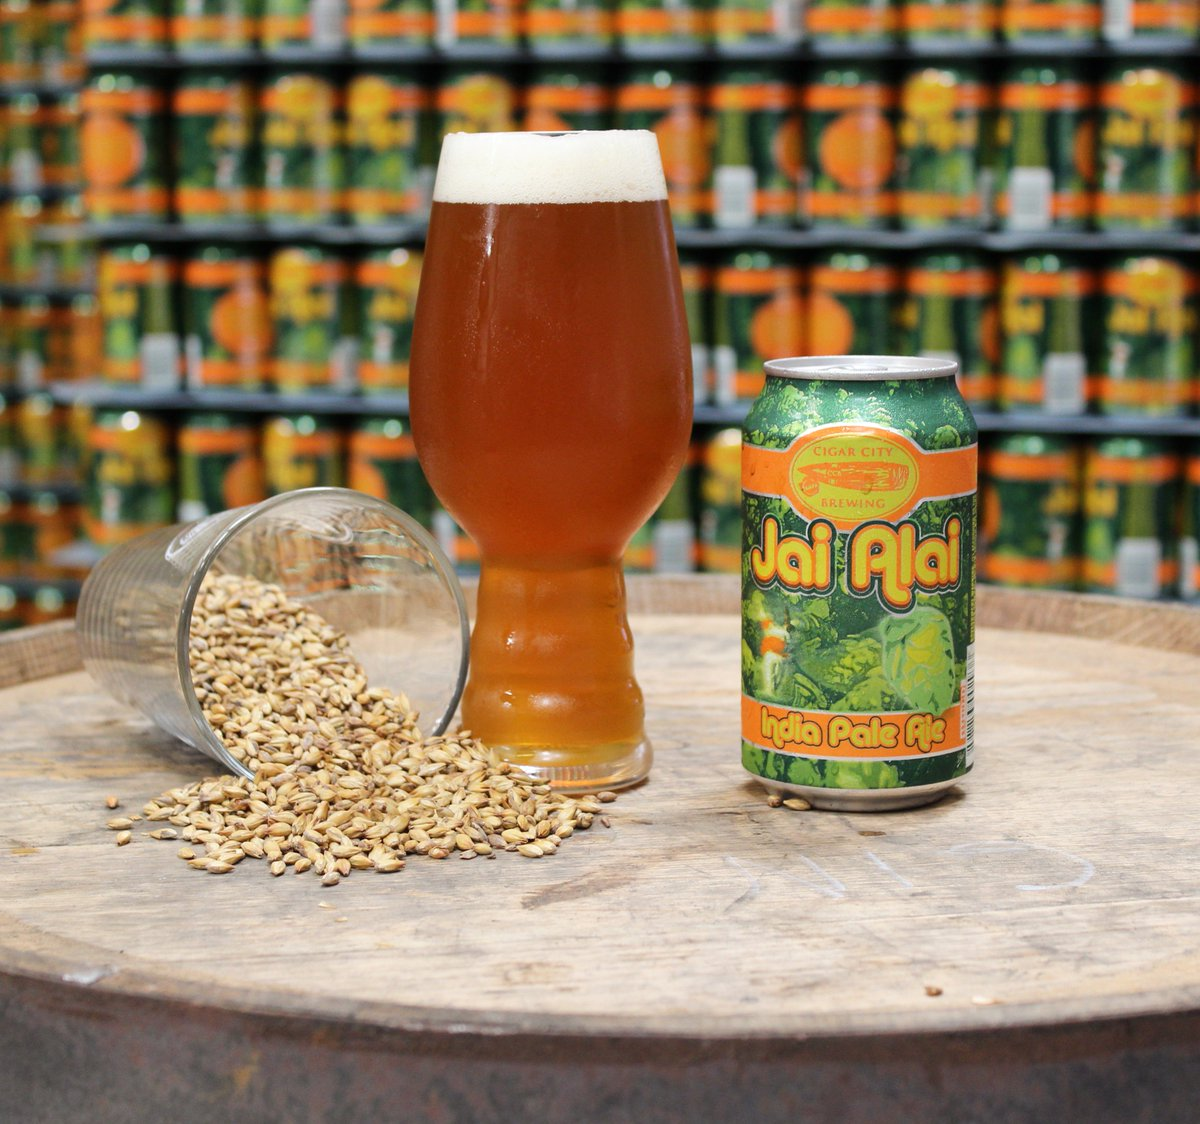 Jai Alai is one of our favorite beers. Retweet if it's your favorite too #CigarCityBrewing #JaiAlai #CraftBeer https://t.co/GiNYjWLuQs